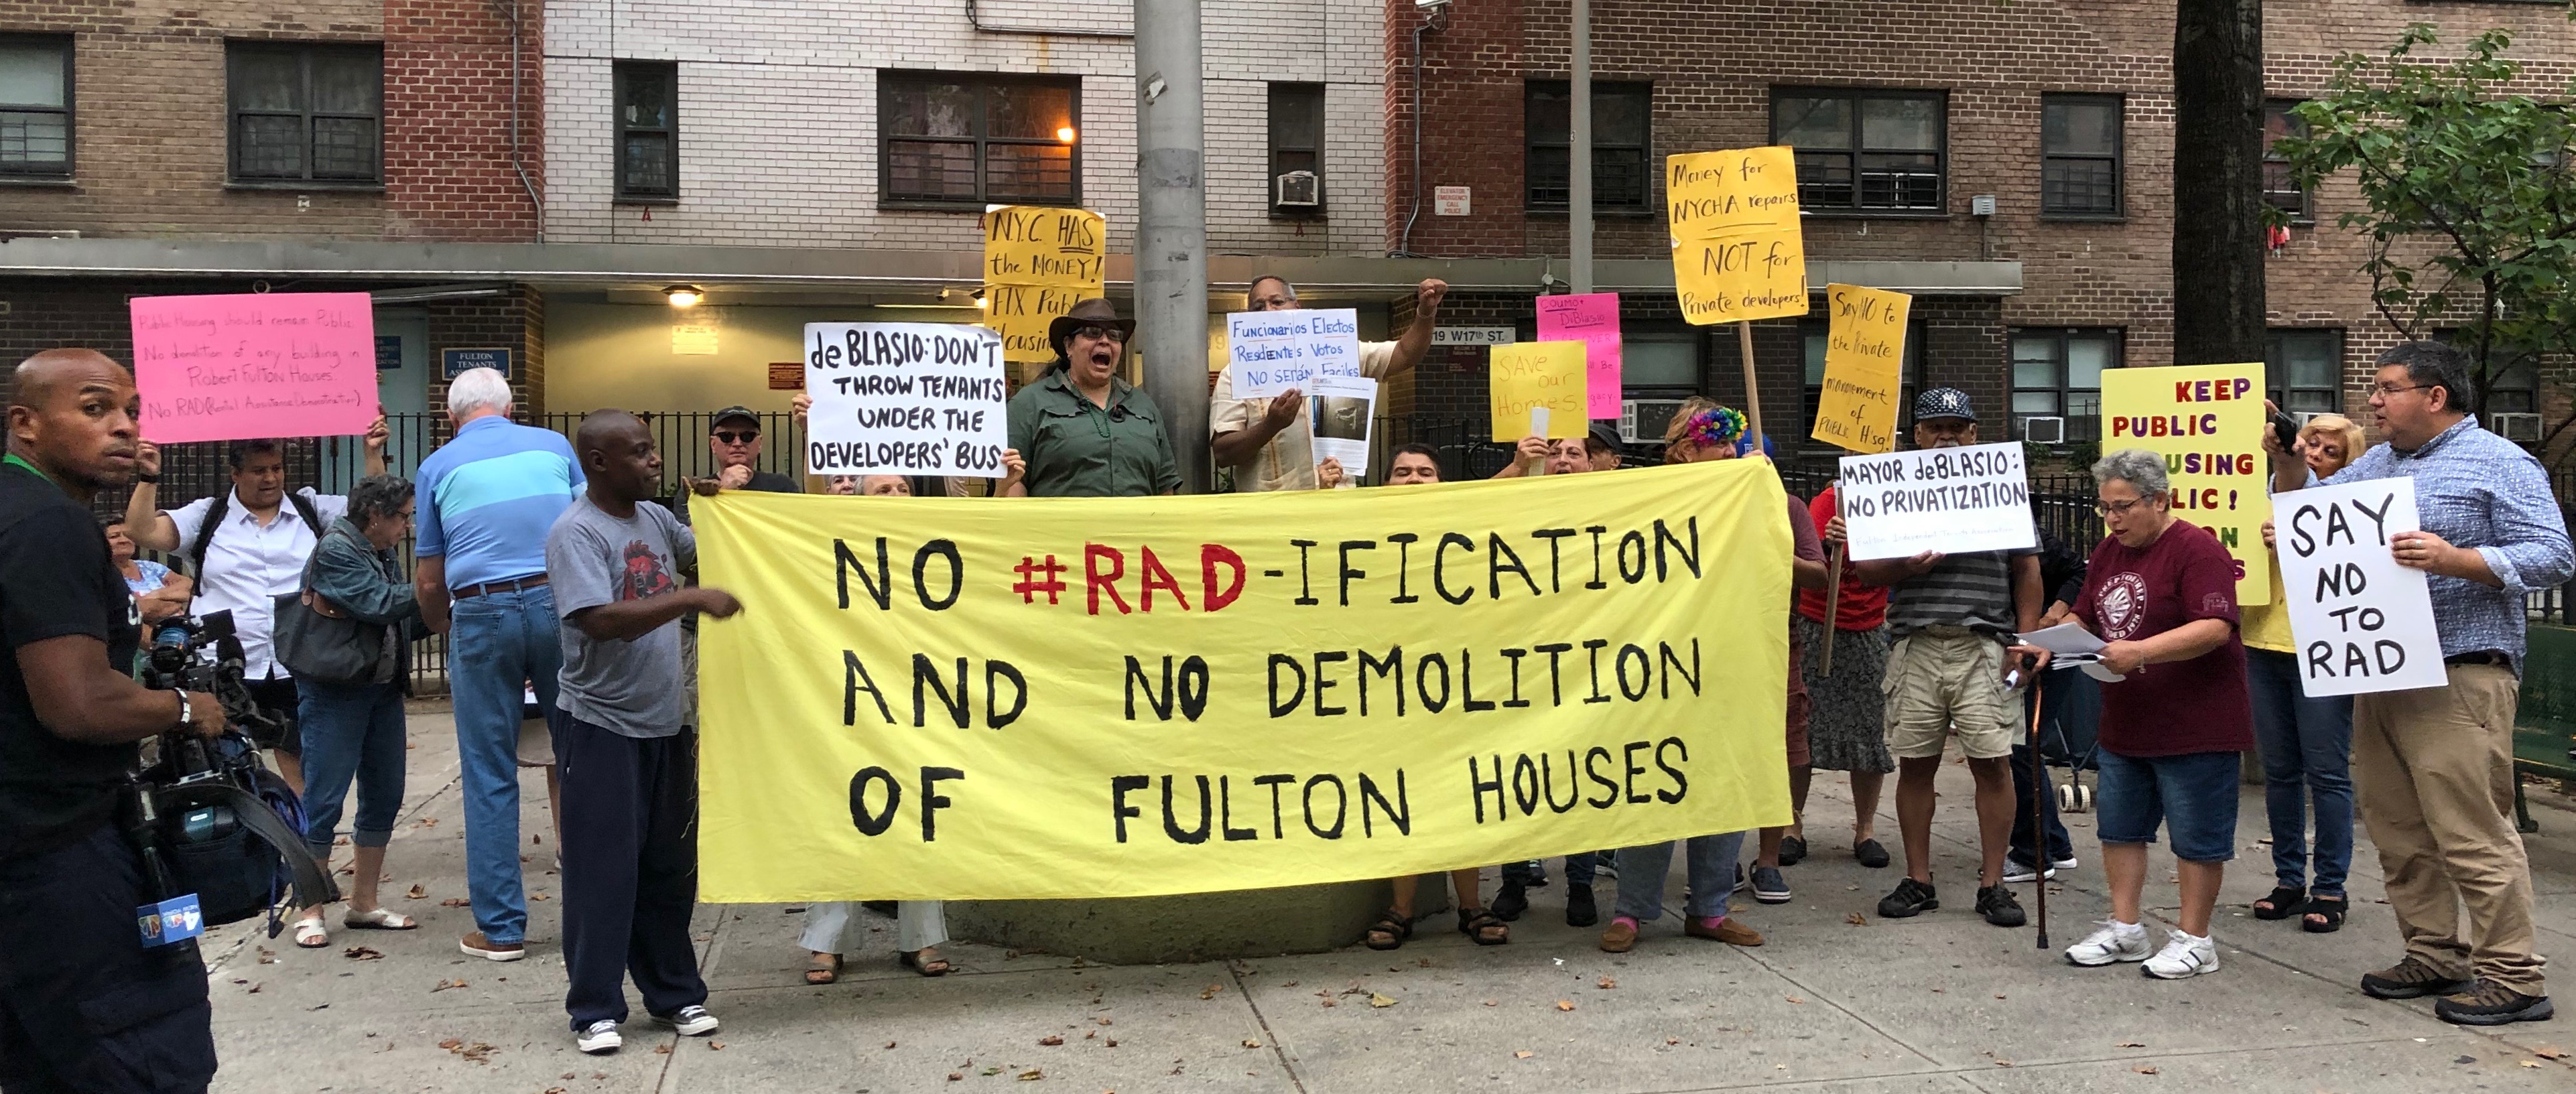 Fulton public housing tenants: 'Our fight is just beginning!'